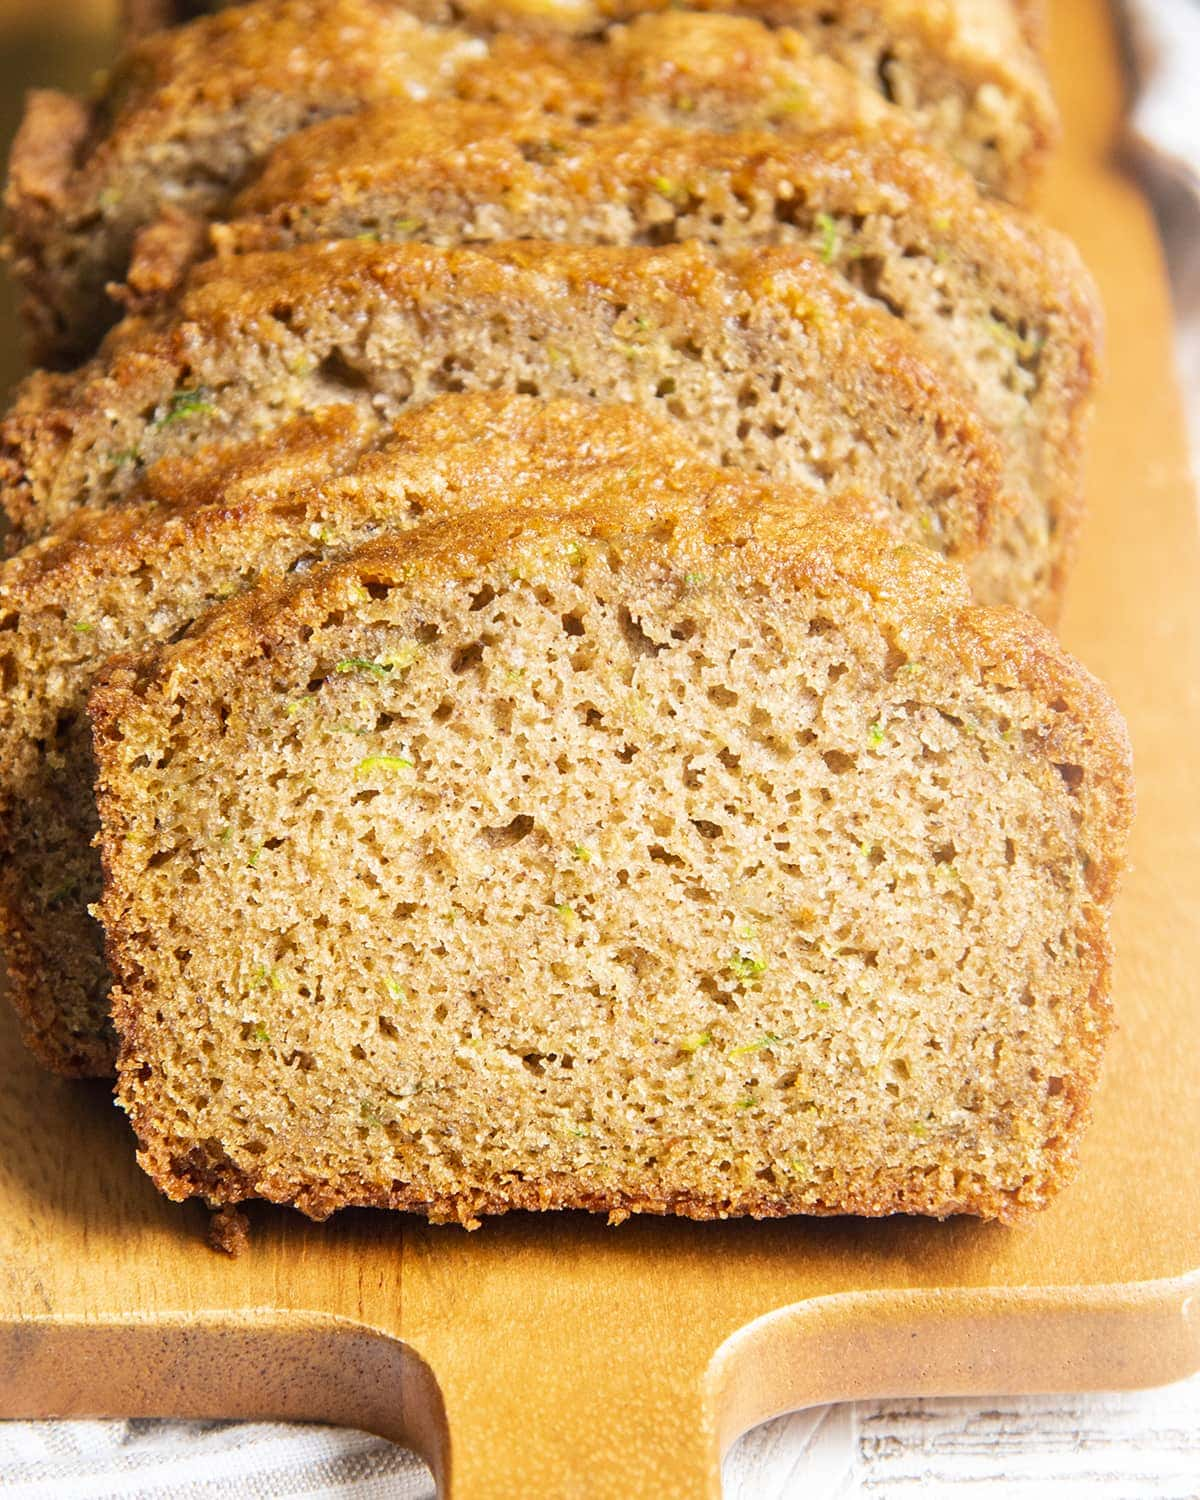 Slices of zucchini bread leaning on one another.